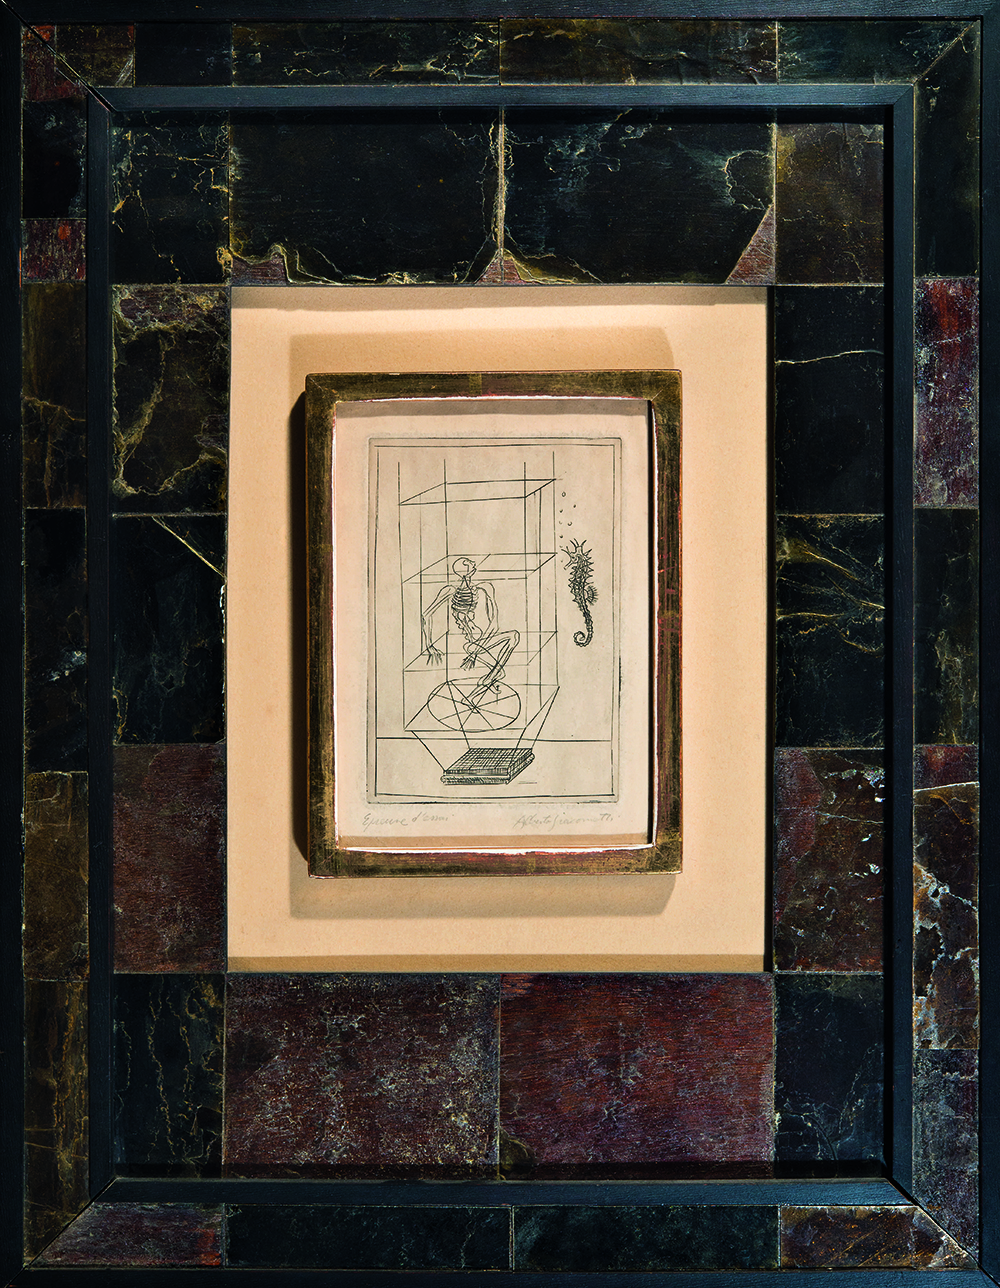 Frame of blackened wood and mica designed by Jean-Michel Frank, containing a print of a drawing by Alberto Giacometti for the frontispiece of the book Les Pieds dans le plat by René Crevel, c. 1933.